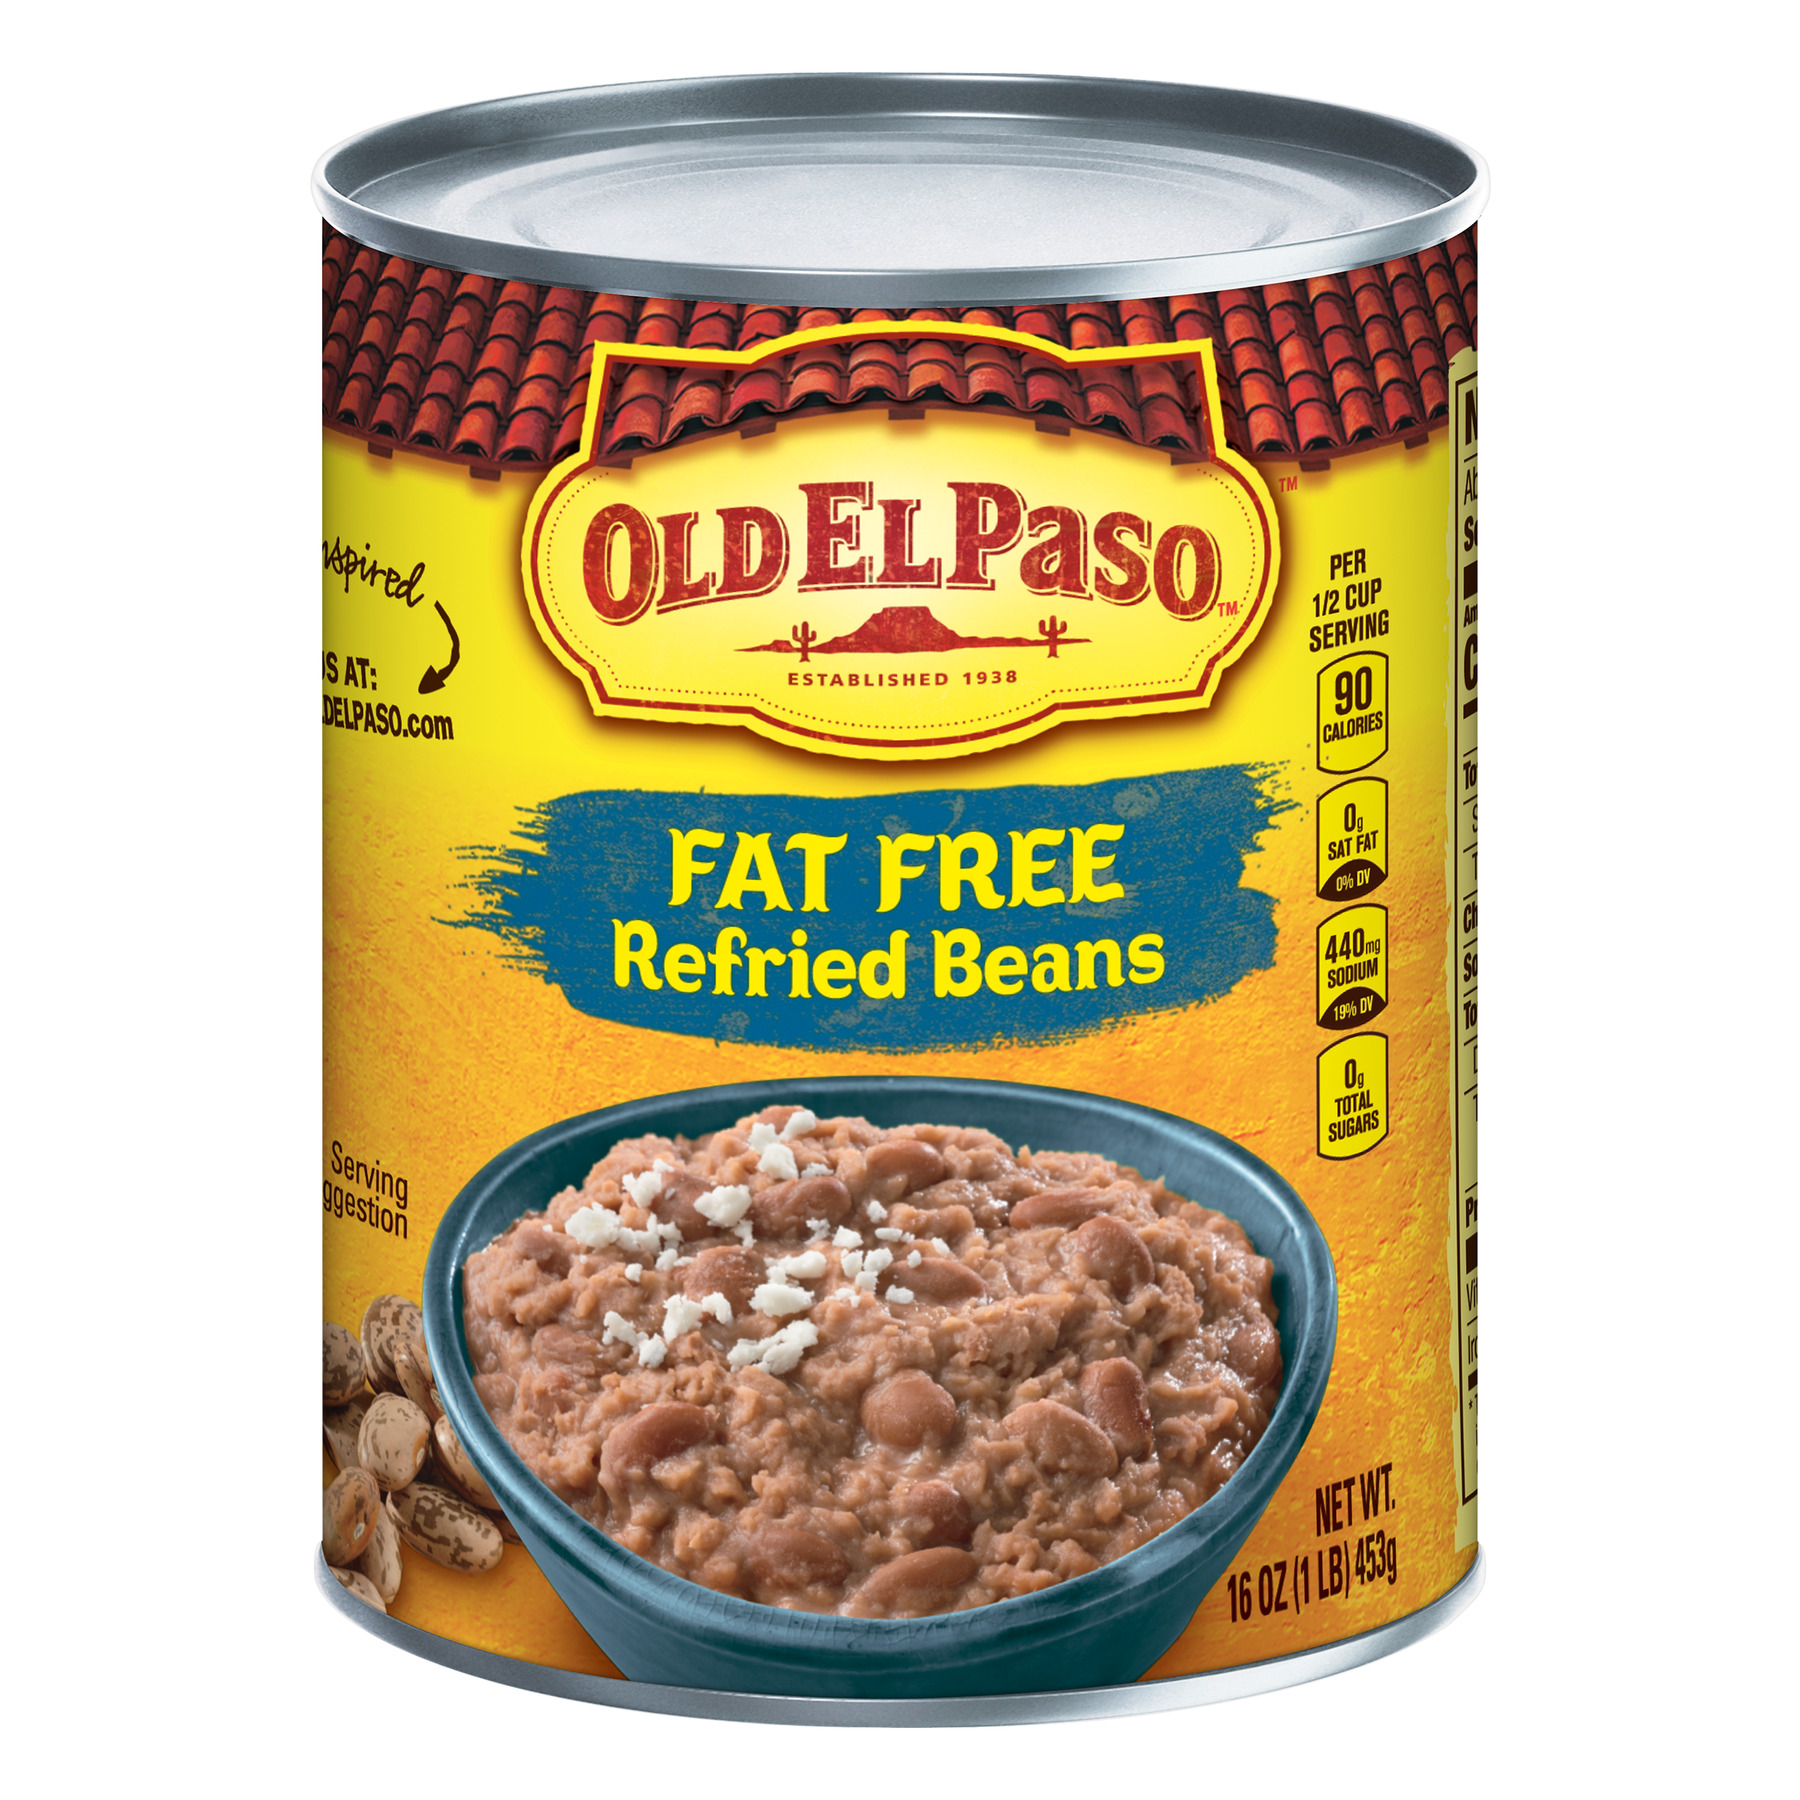 Old El Paso Fat Free Refried Beans, 16 oz Can